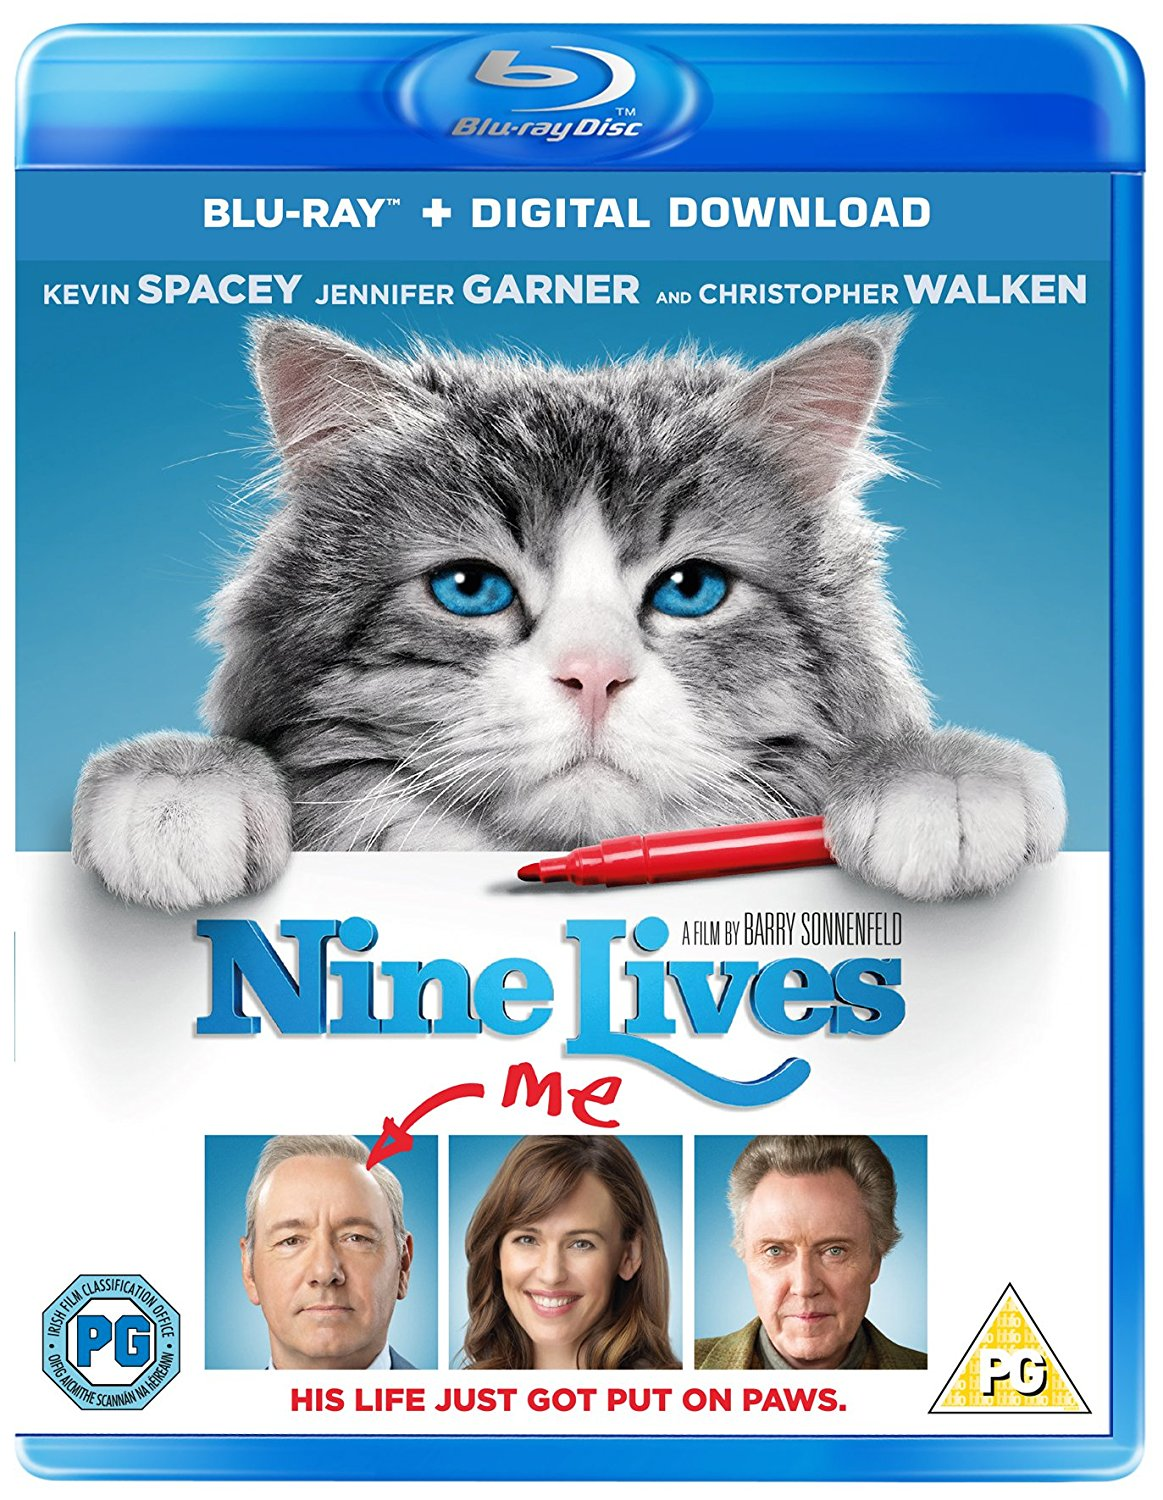 Win Nine Lives on Blu-ray, out December 12th